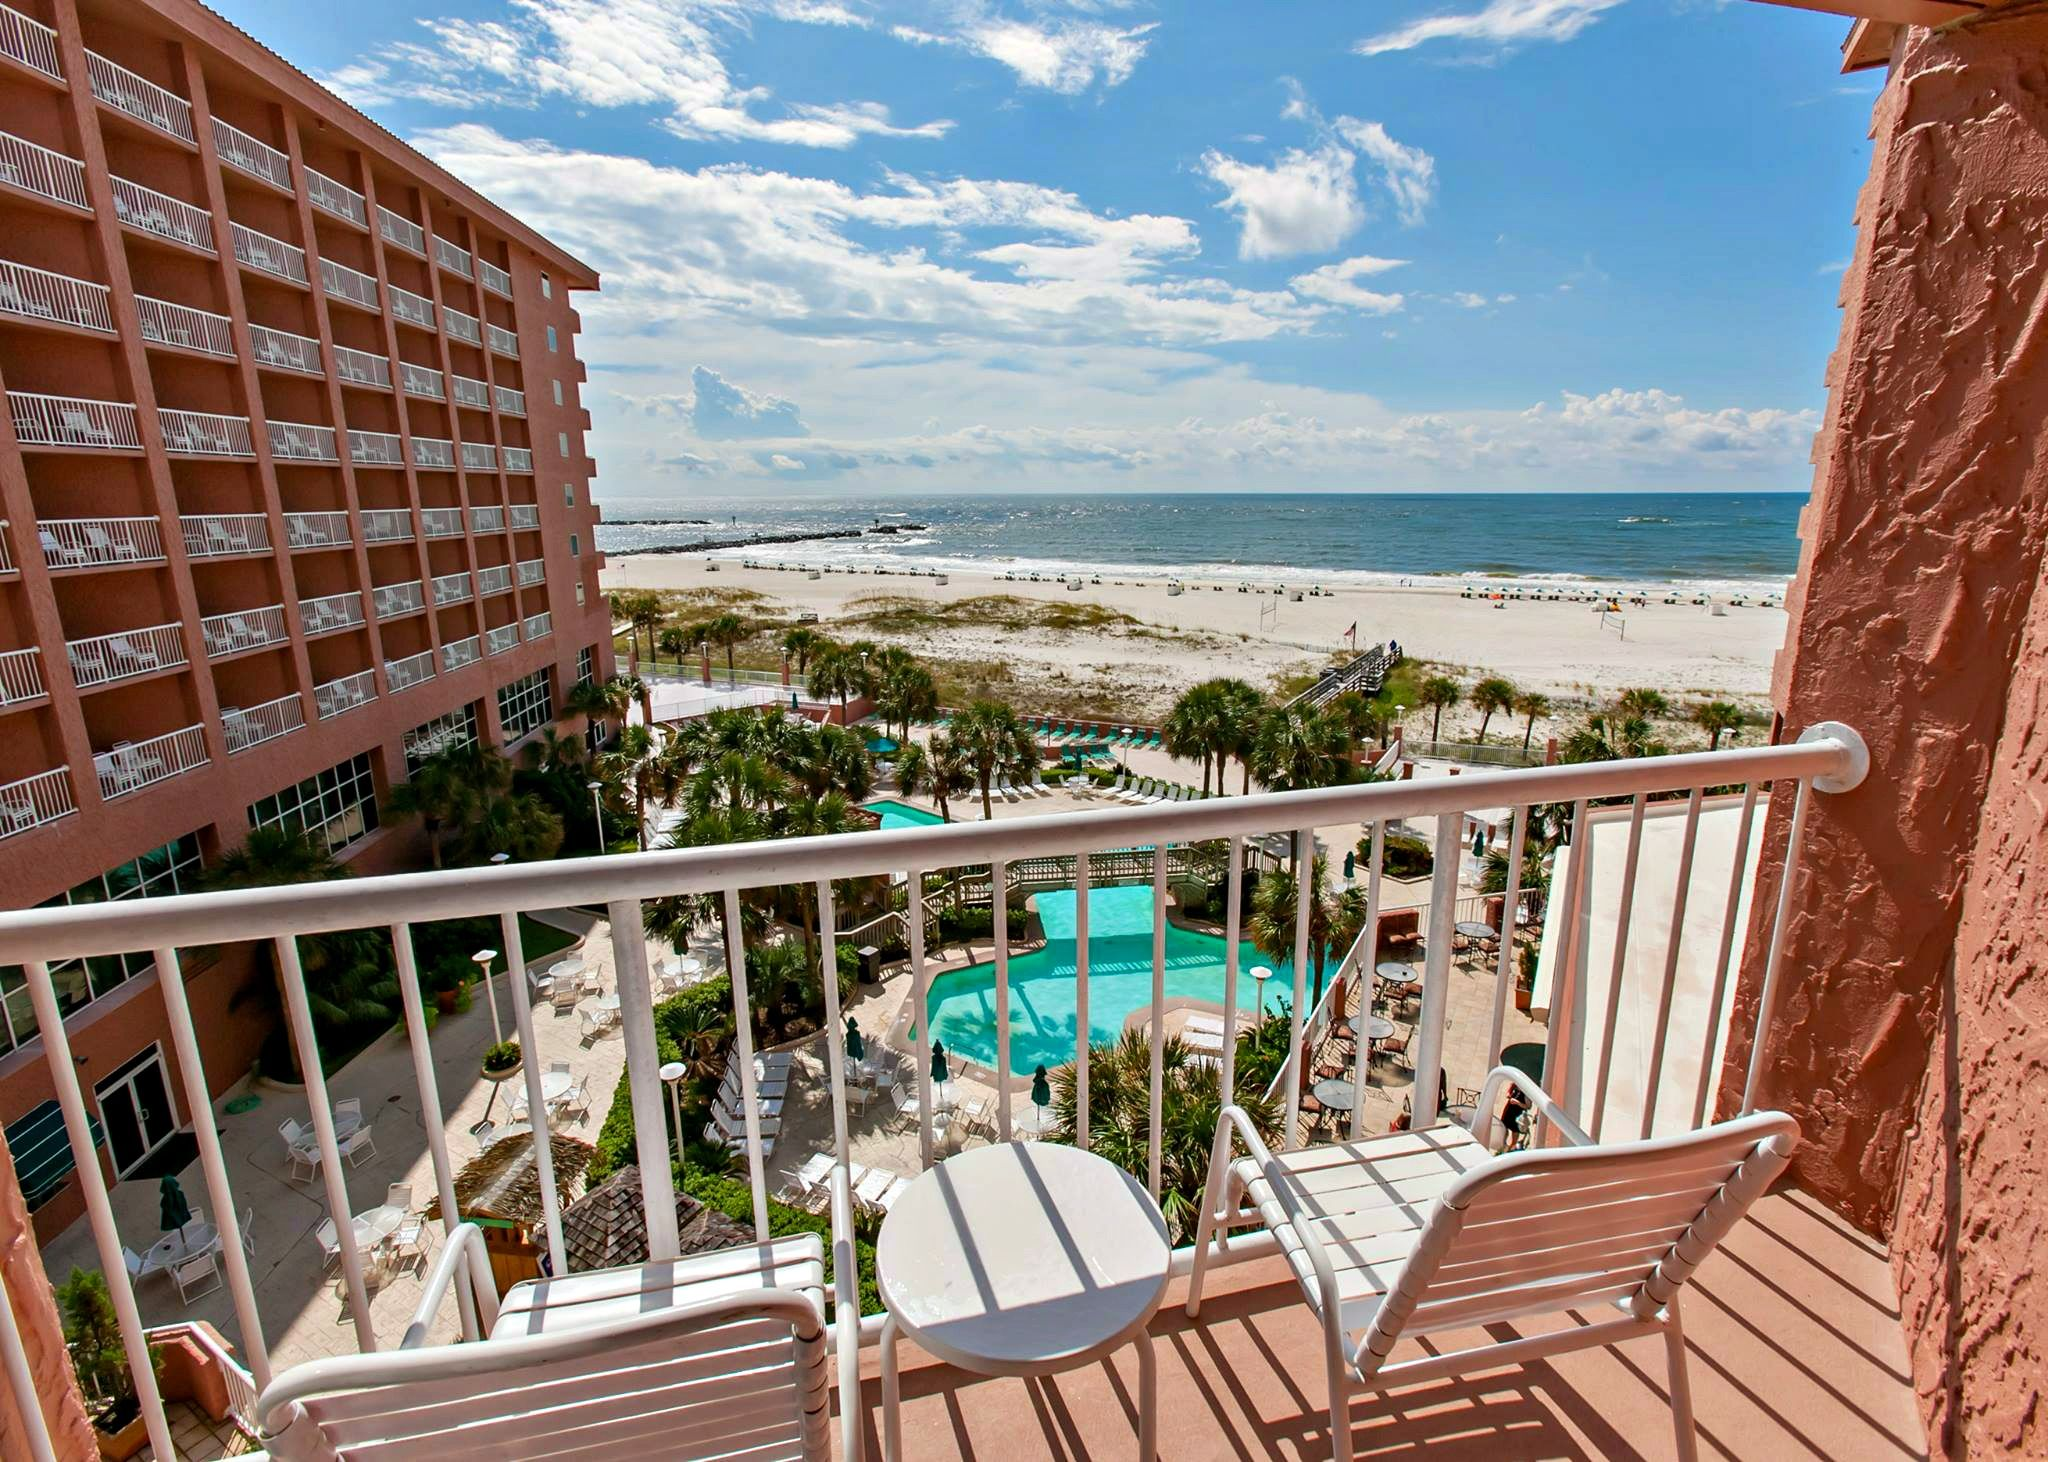 Balcony View At The Perdido Beach Resort In Orange This Was Our Except We